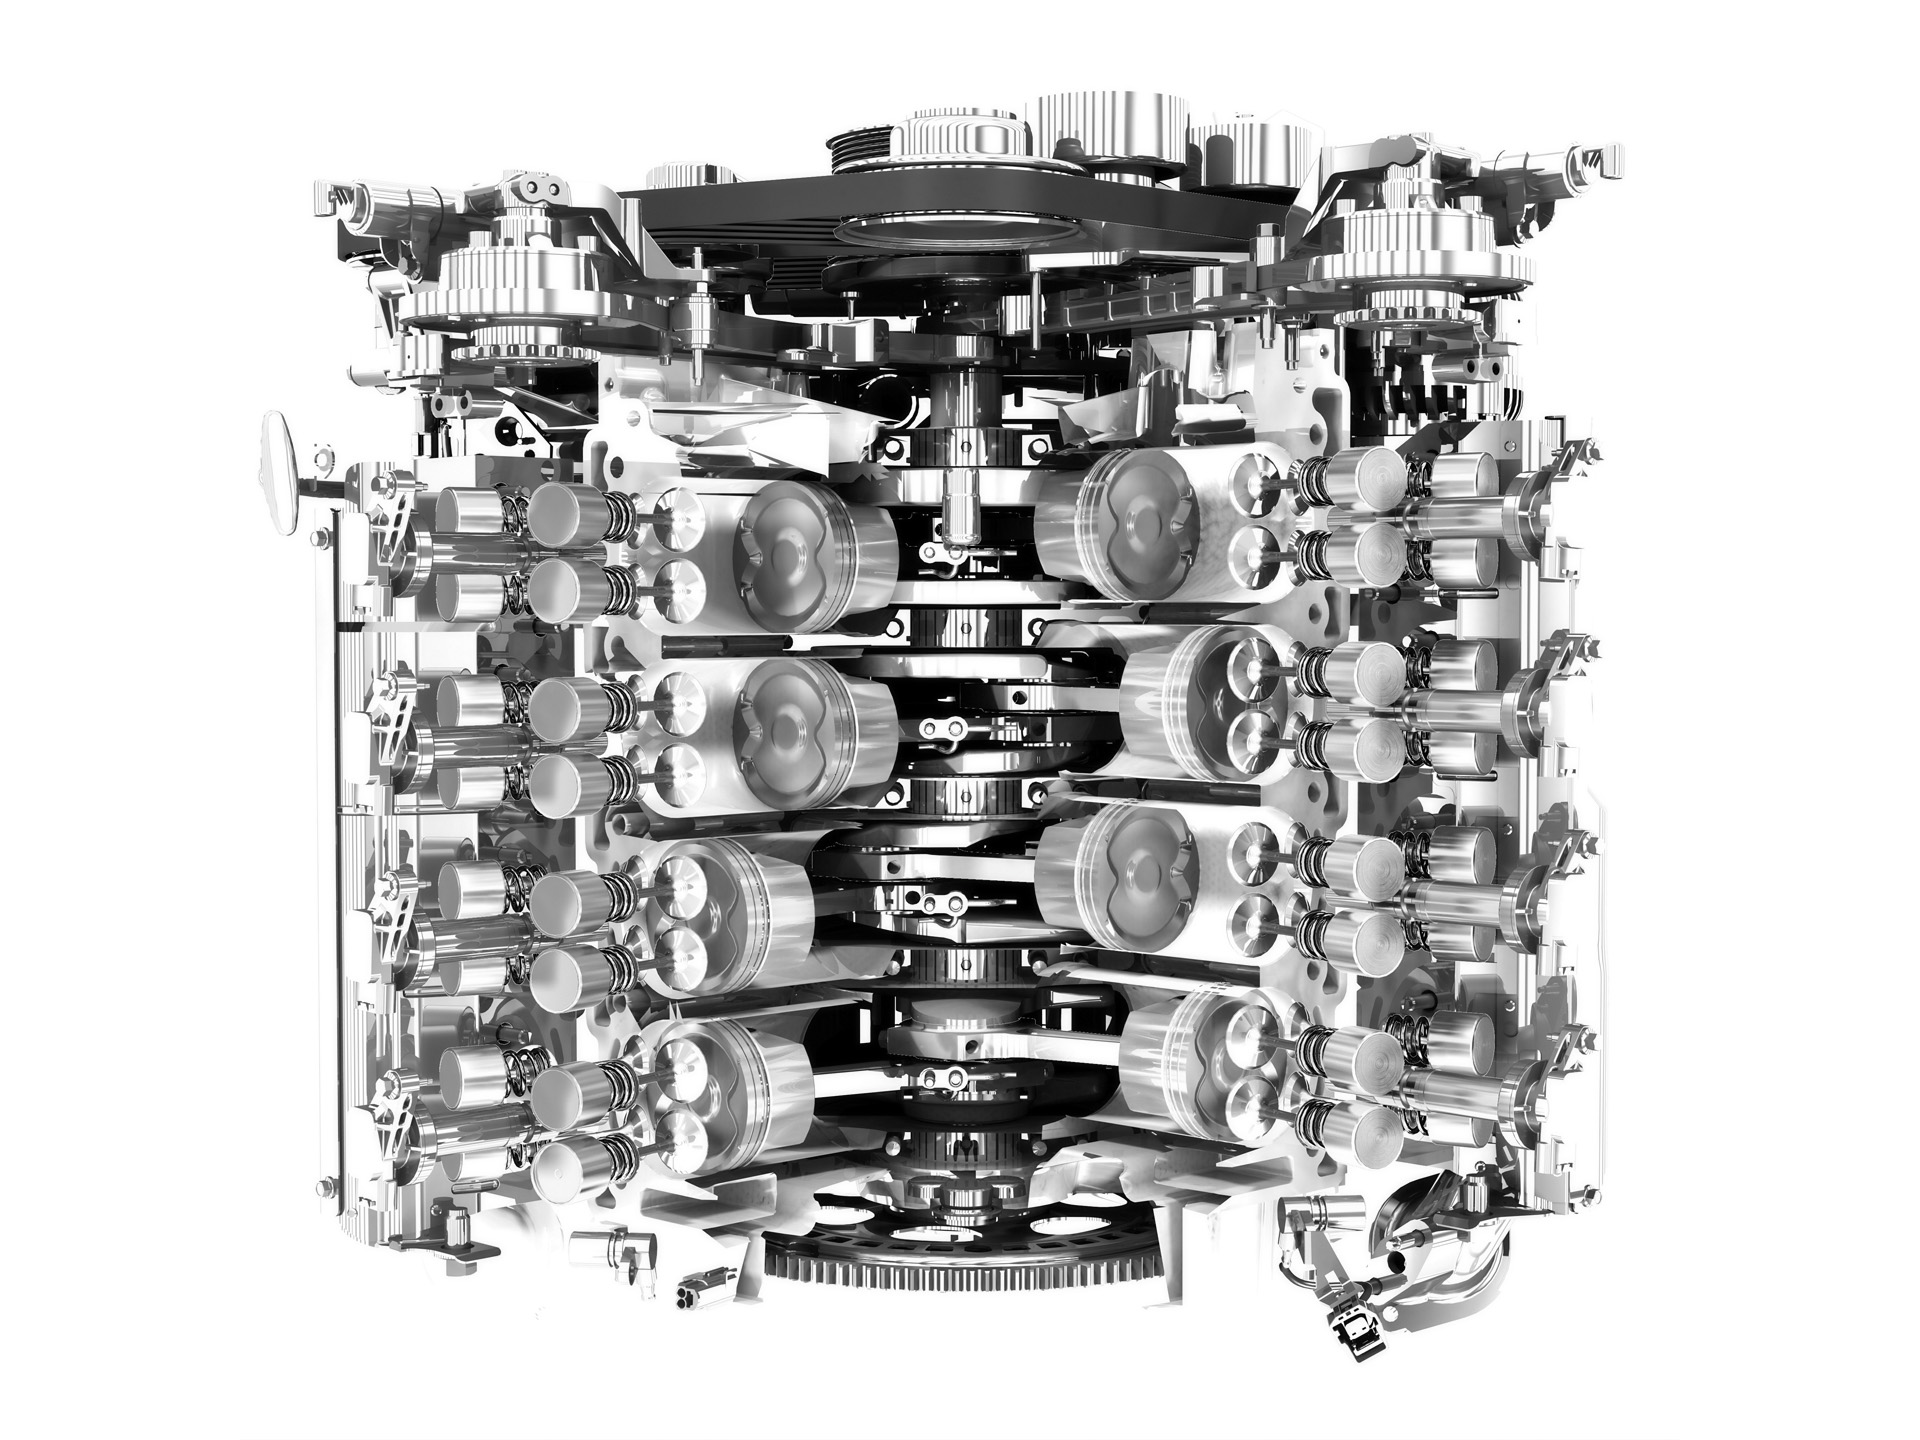 Sample P1684 Engine